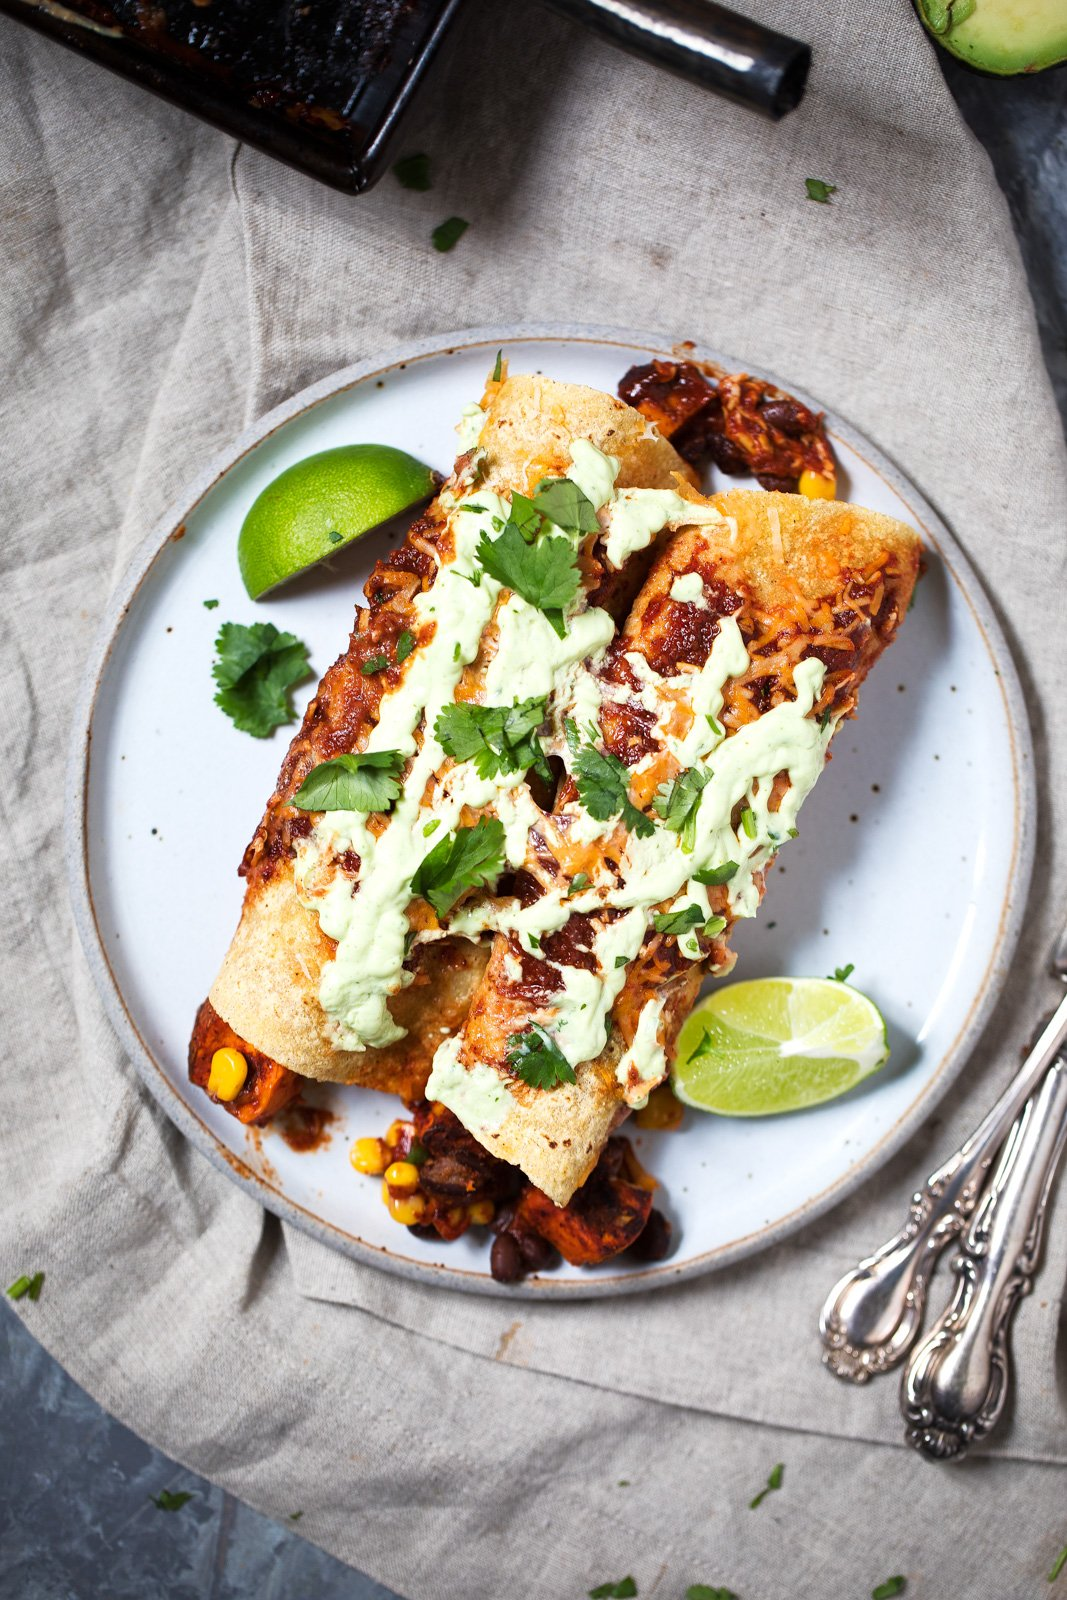 Two enchiladas on a white plate with lime wedges